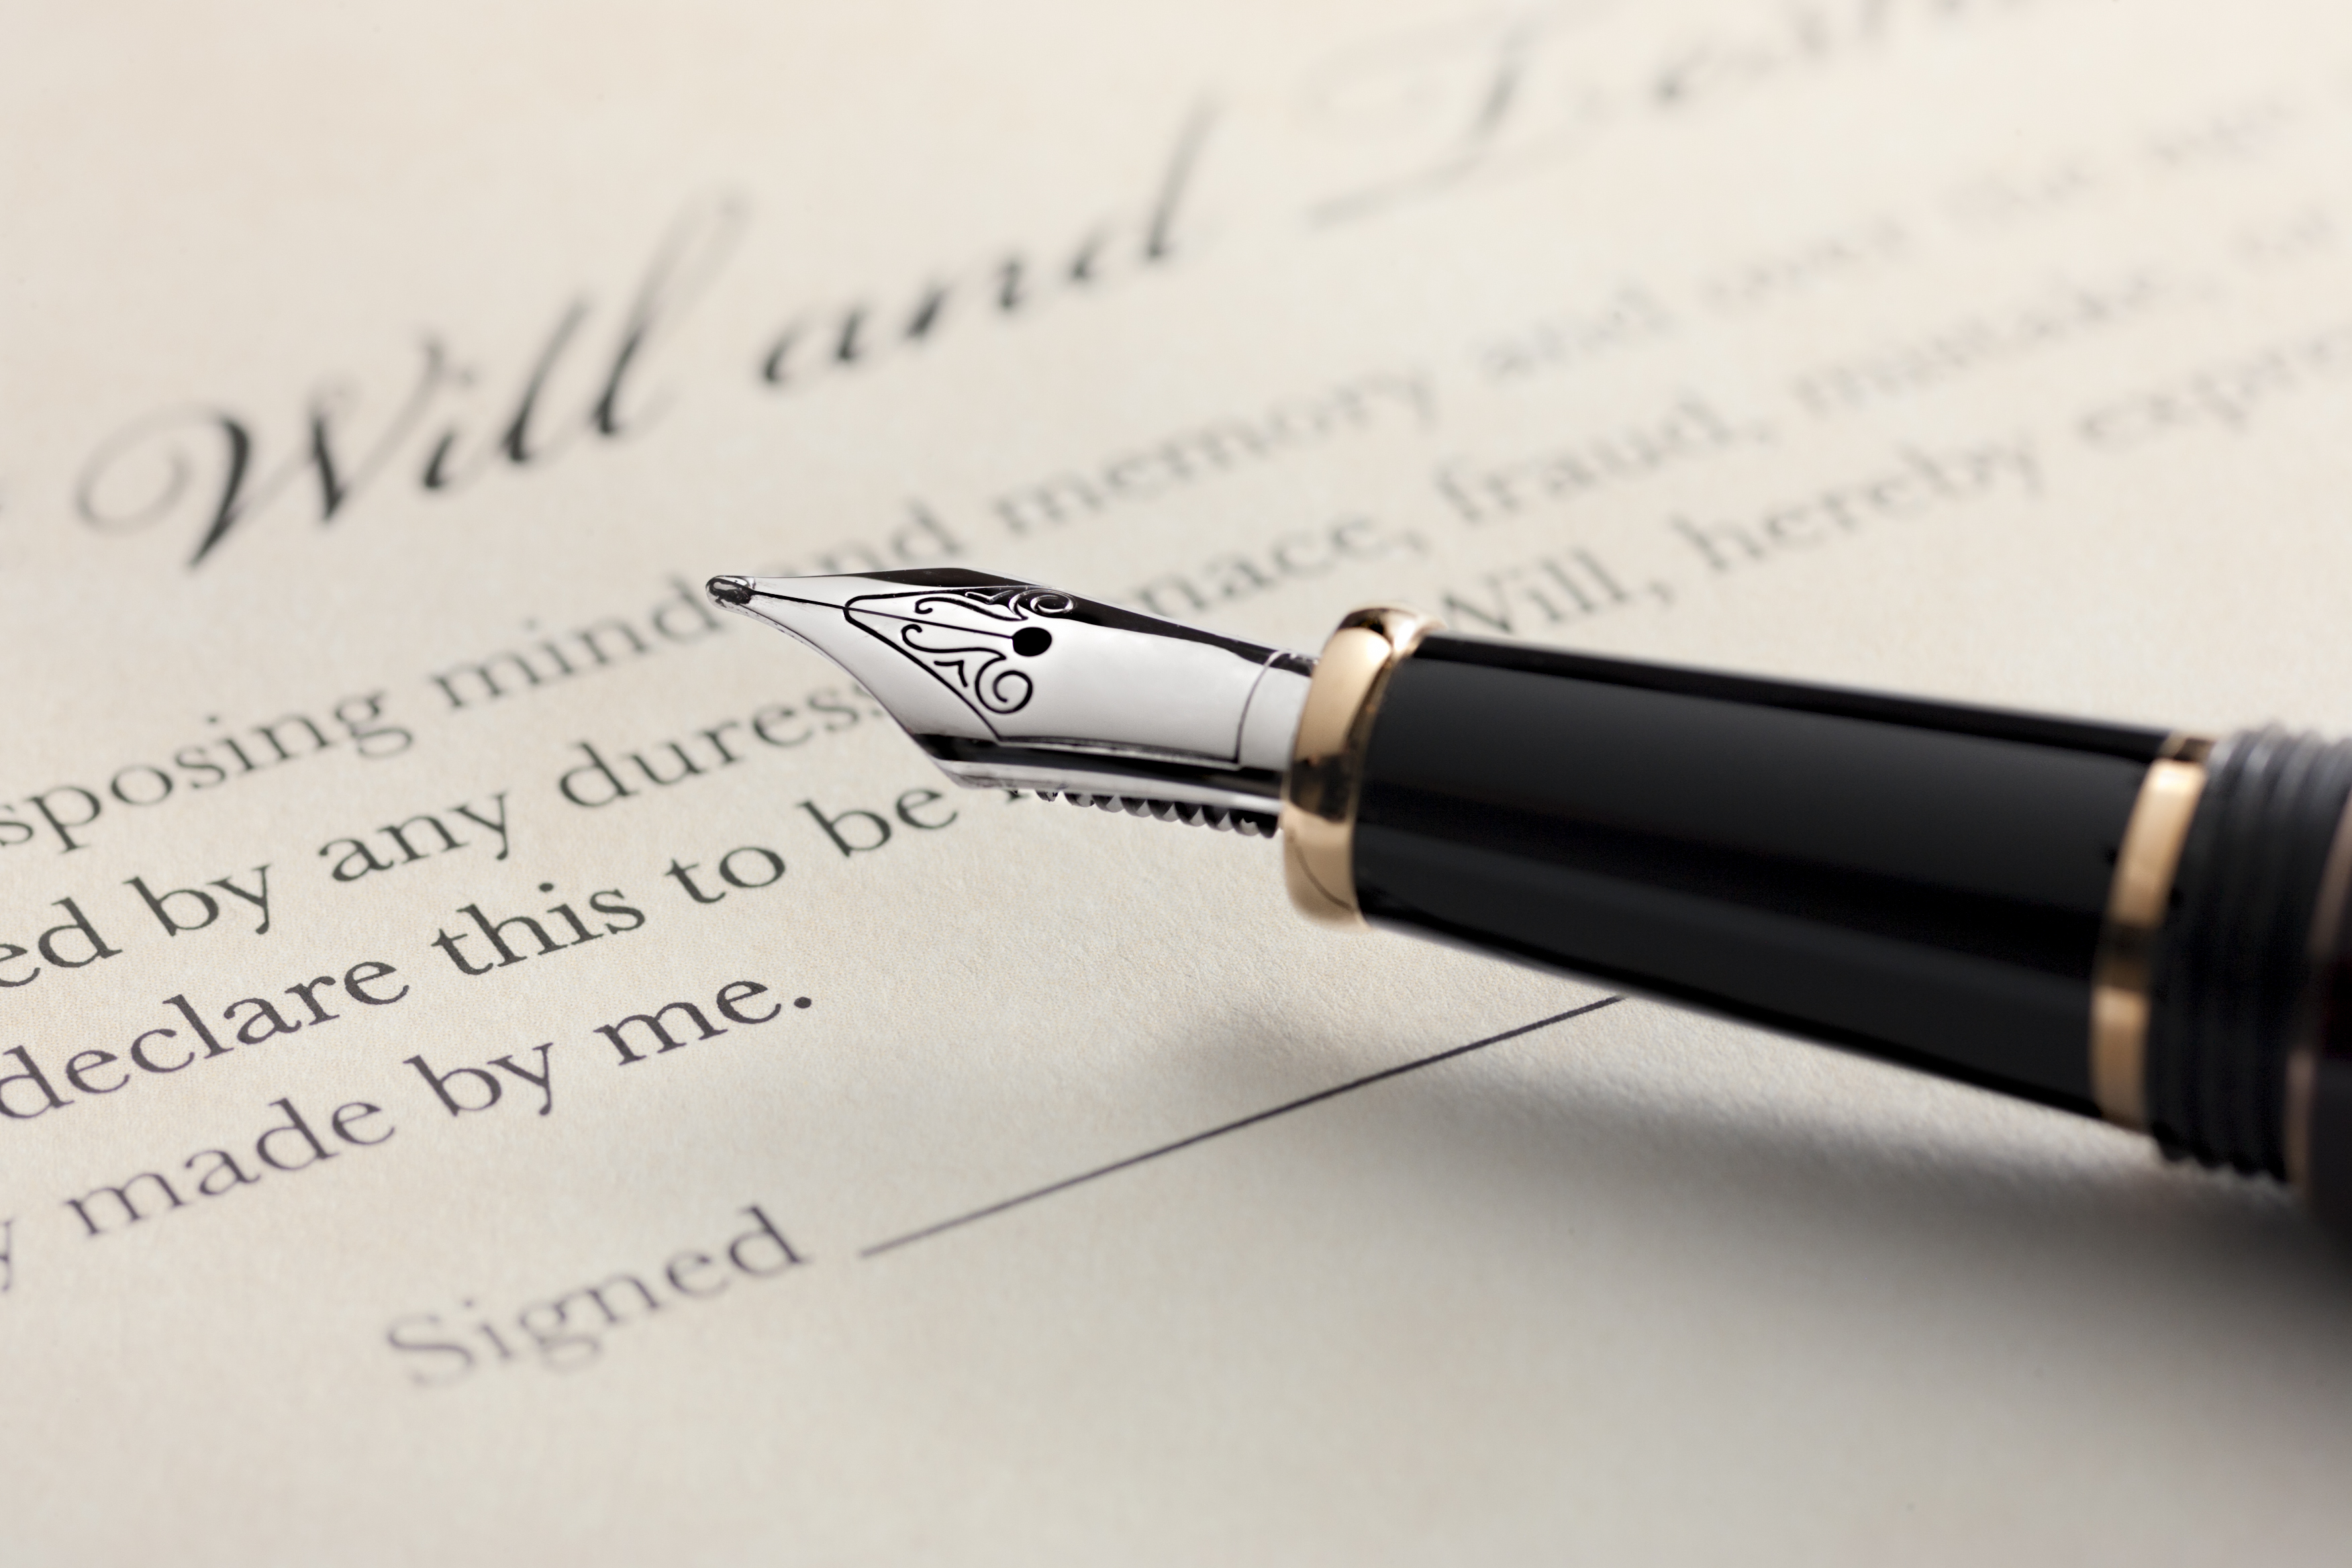 How To Update A Personal Will In California